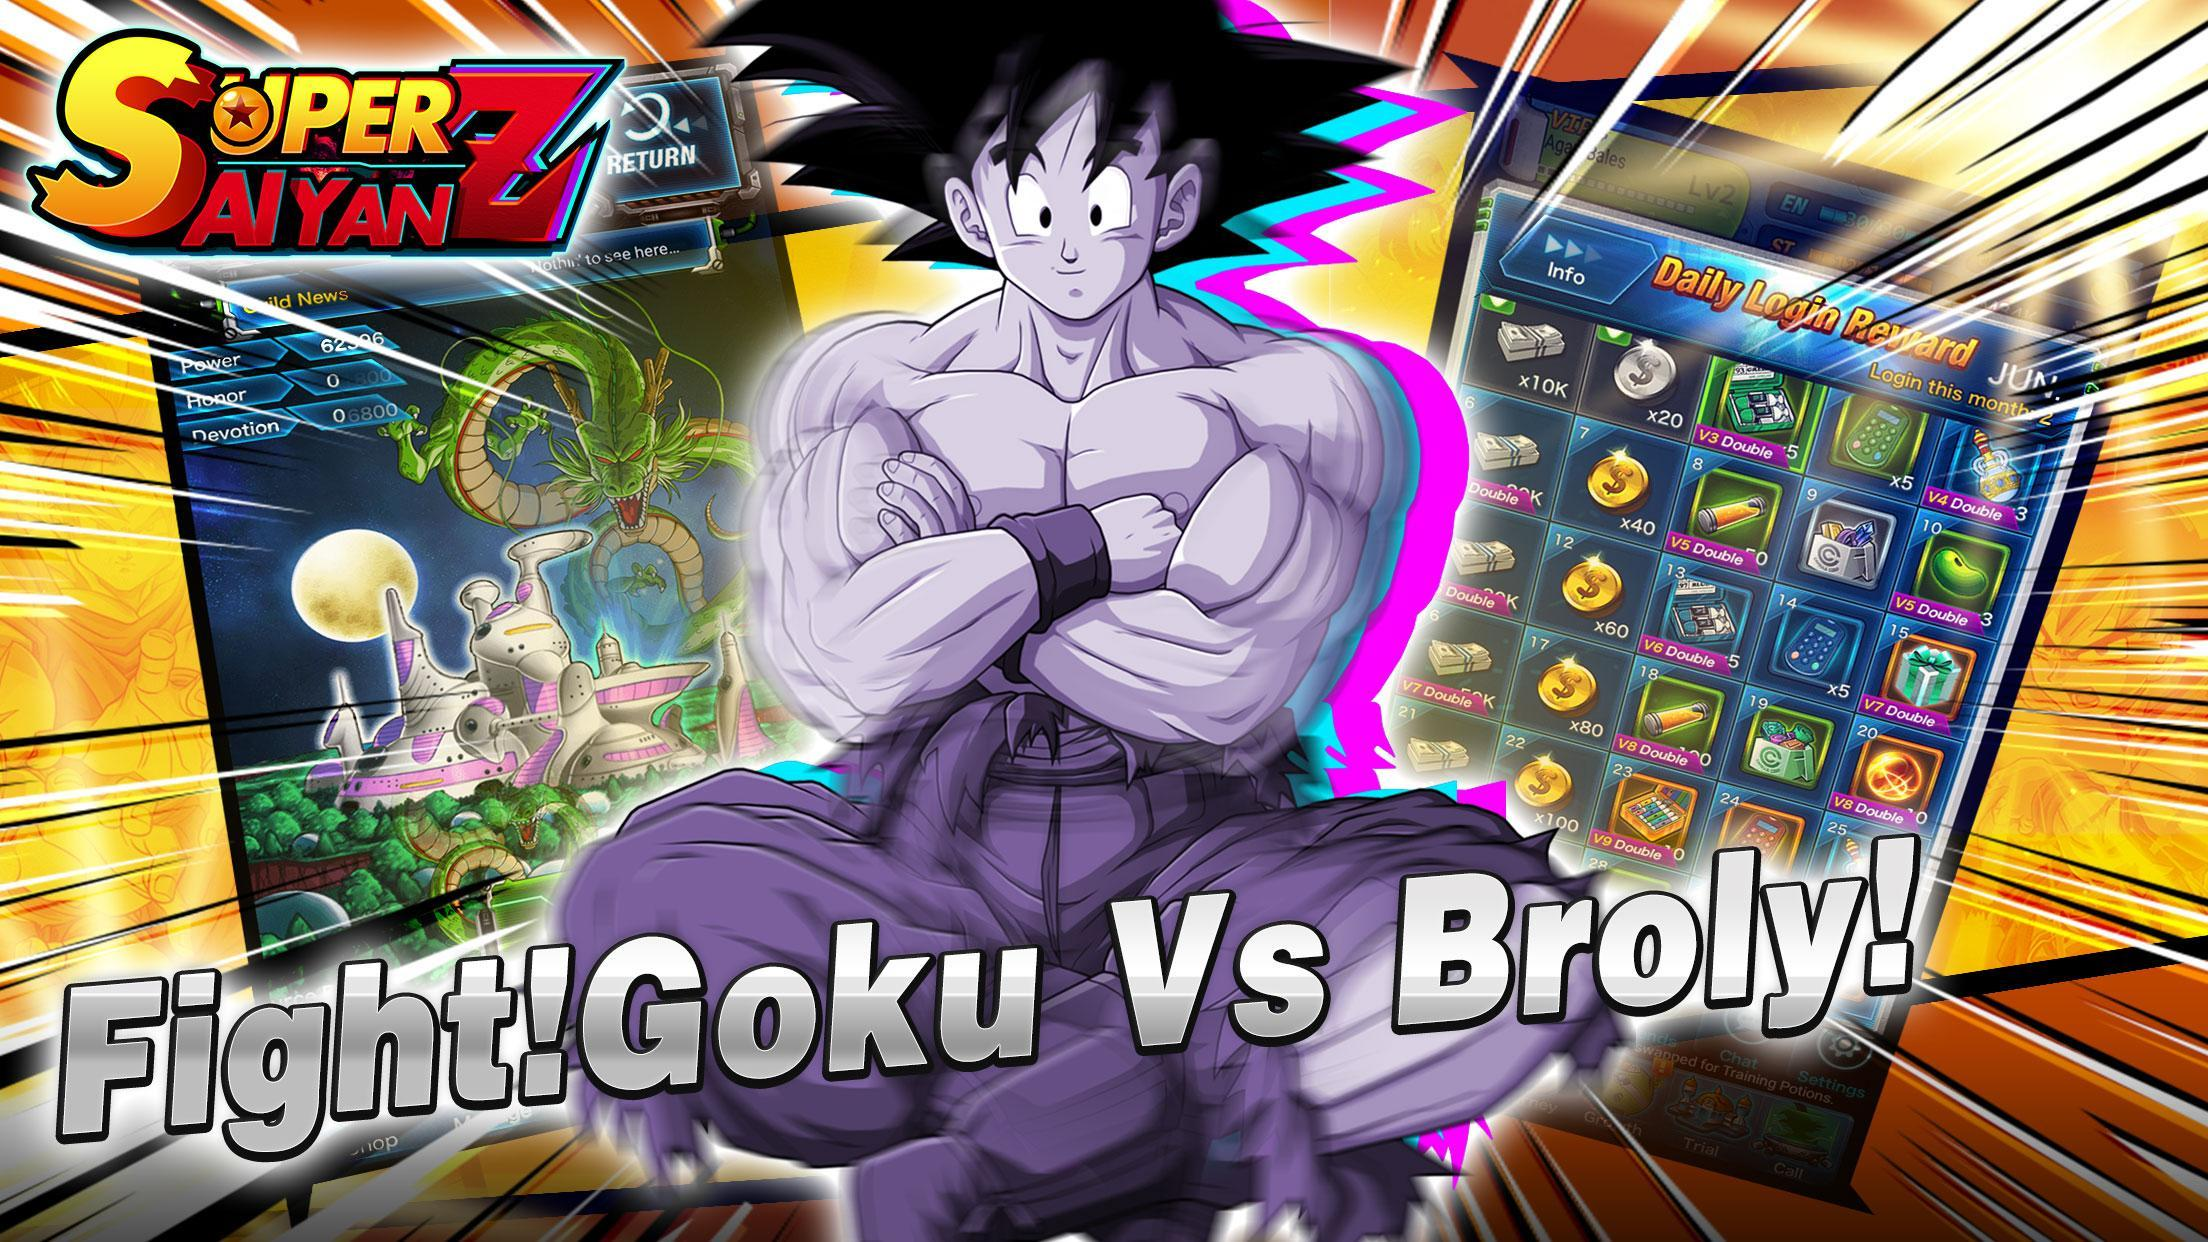 Saiyan Fighter - Dragon Battle (Unreleased) for Android - APK Download